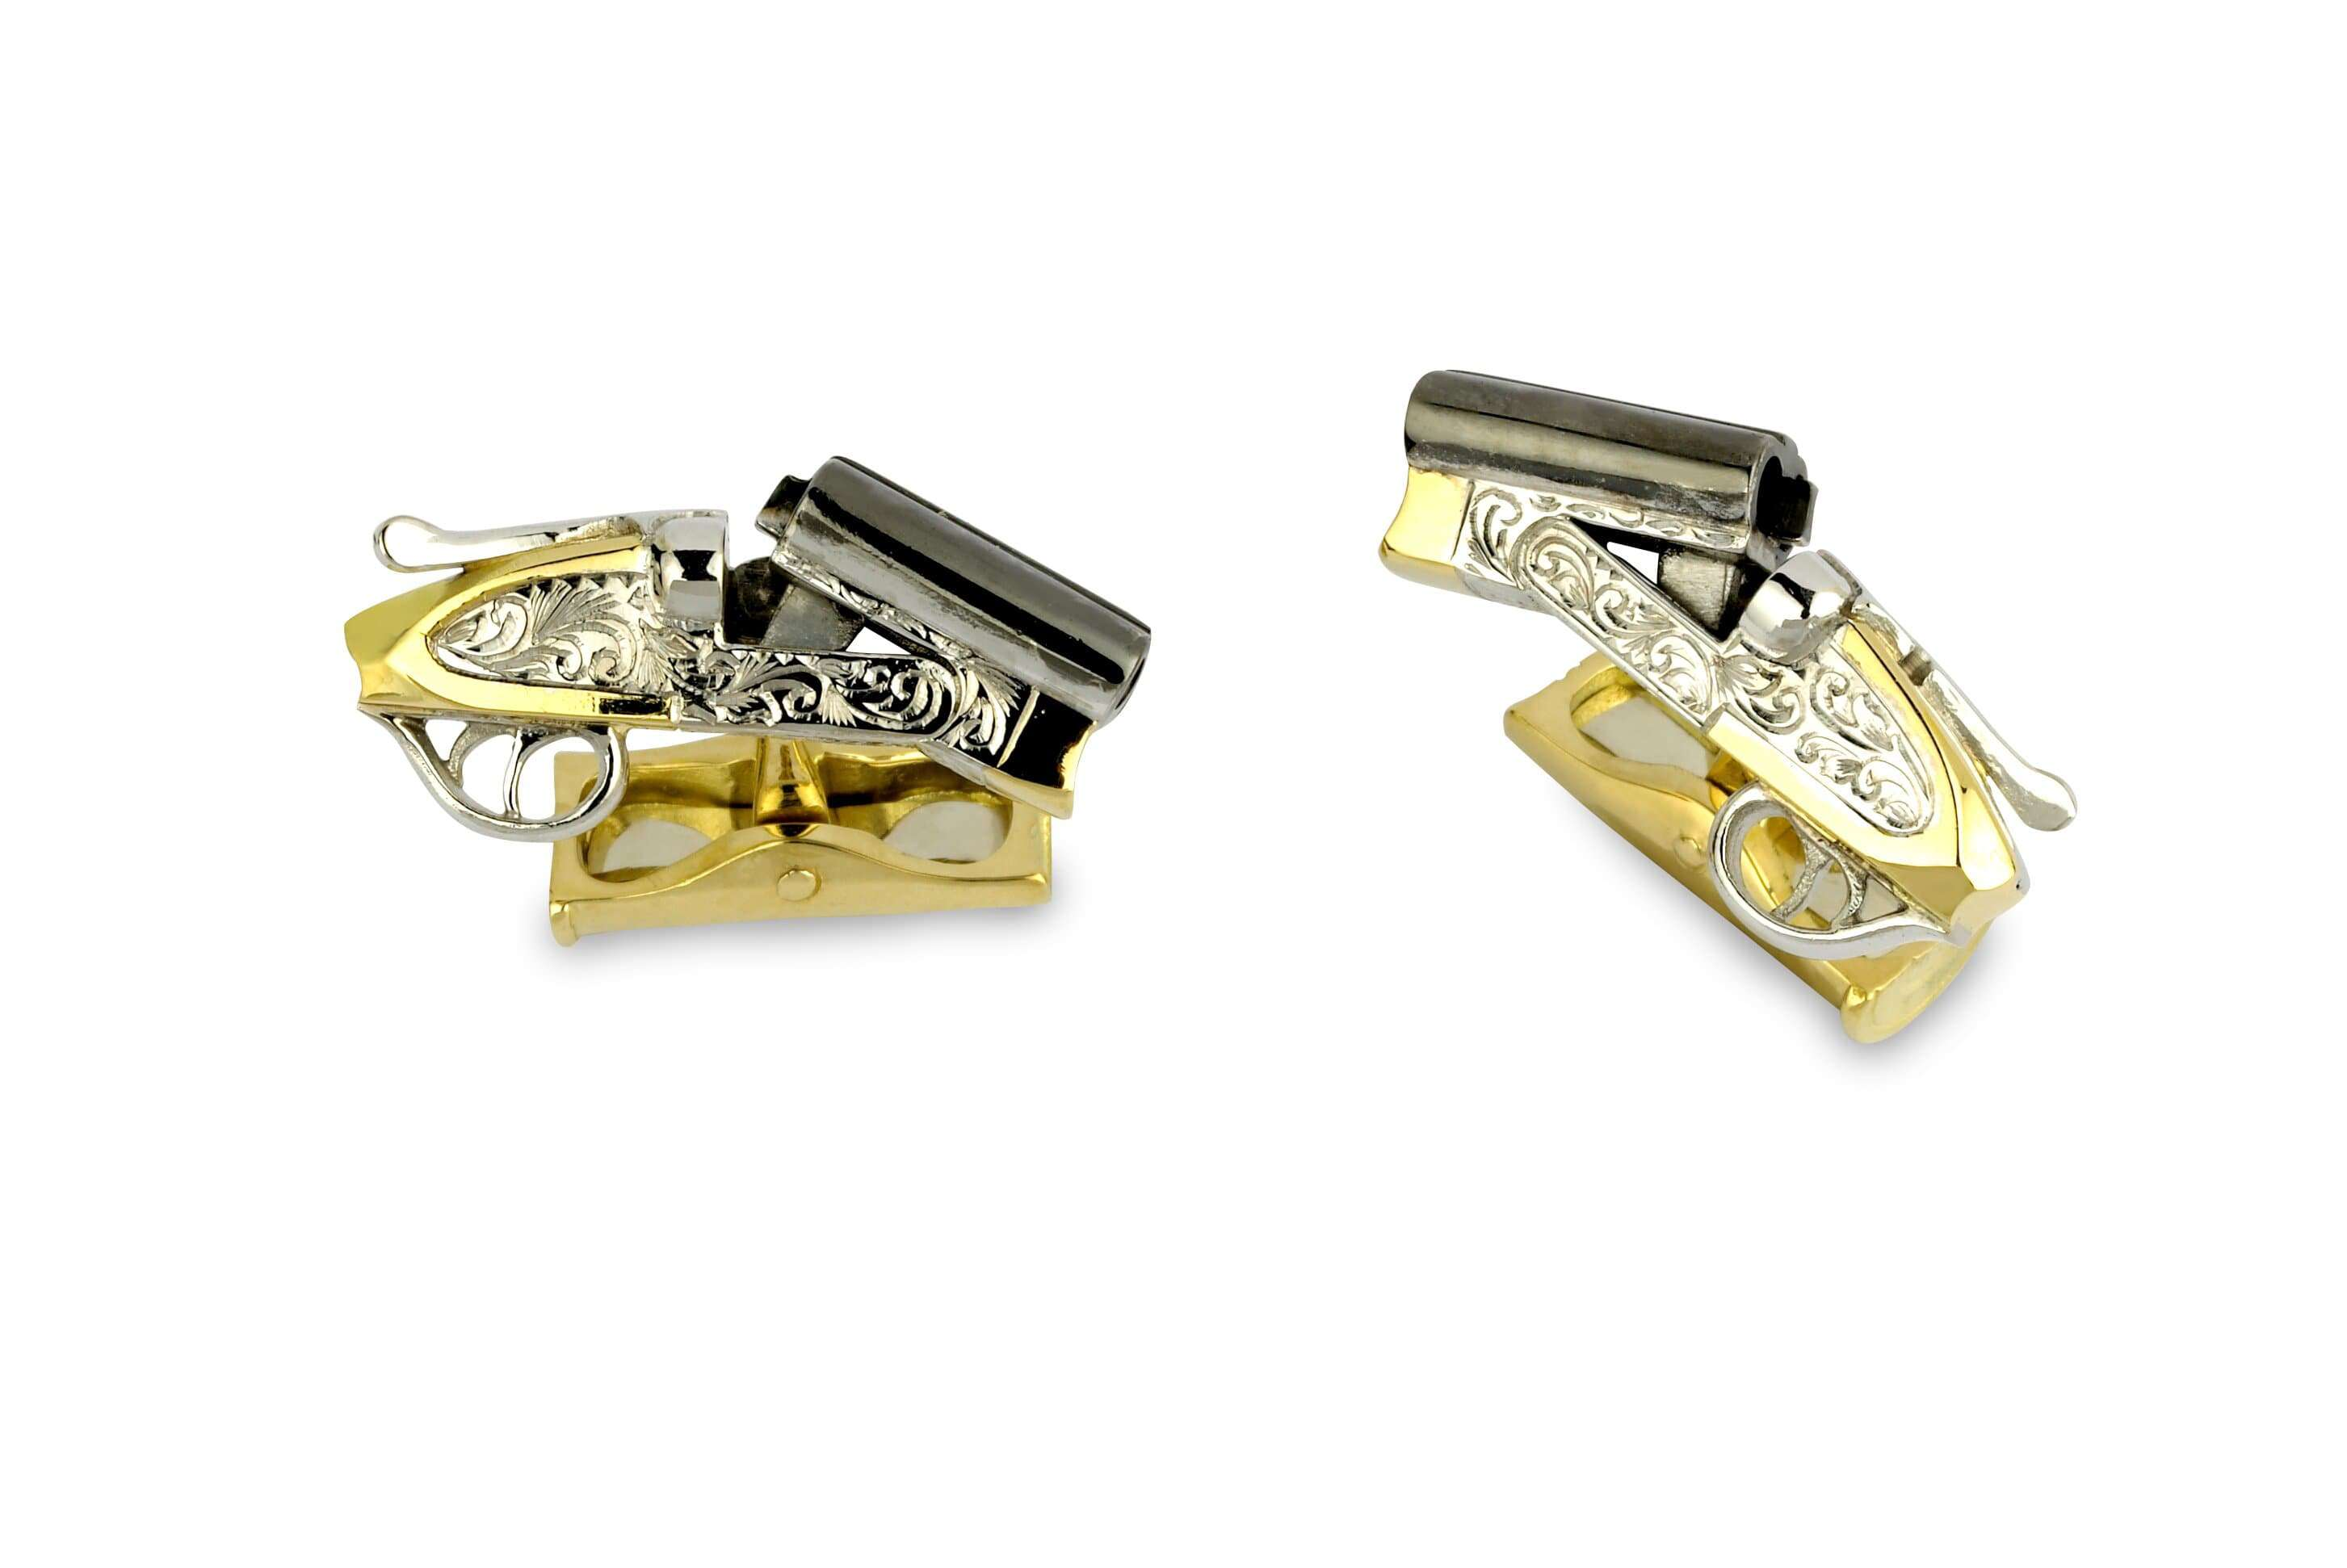 Deakin & Francis Yellow Gold Shotgun Cufflinks